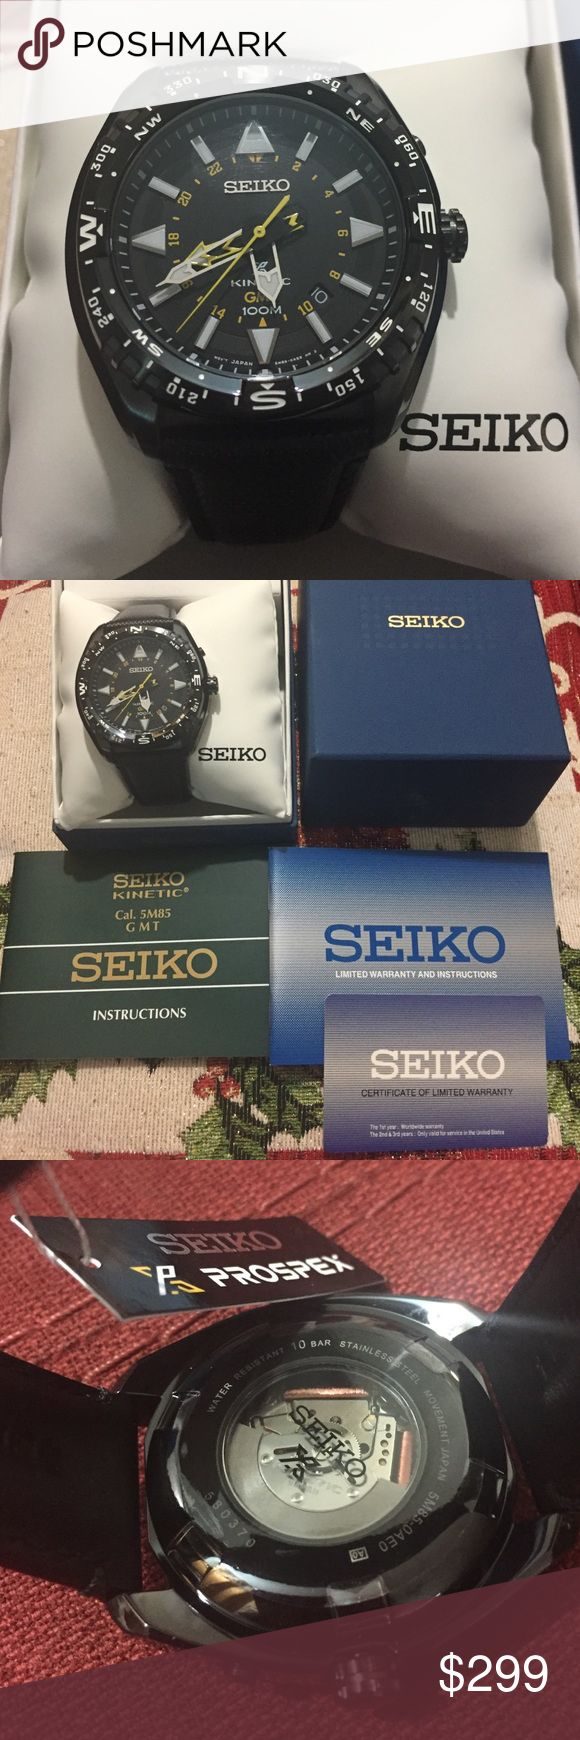 🎉‼️ SALE ‼️🎉 SEIKO Kinetic ProspeX watch Guaranteed 100% Brand New and Authentic.    New Seiko SUN057 Prospex Kinetic GMT Stainless Black Leather Strap 100M Men's Watch     Product Description  Cal. 5M85 Black Dial Kinetic Movement Power Reserve Indicator Function GMT indicator 6 Month Power Reserve Date Calendar   Black Ion Stainless Steel Case Black Leather Strap Buckle Clasp  Hardlex Crystal  Luminous Lumbrite Hands and Markers Rotating bezel Screw down crown Screw See Through Case Back…